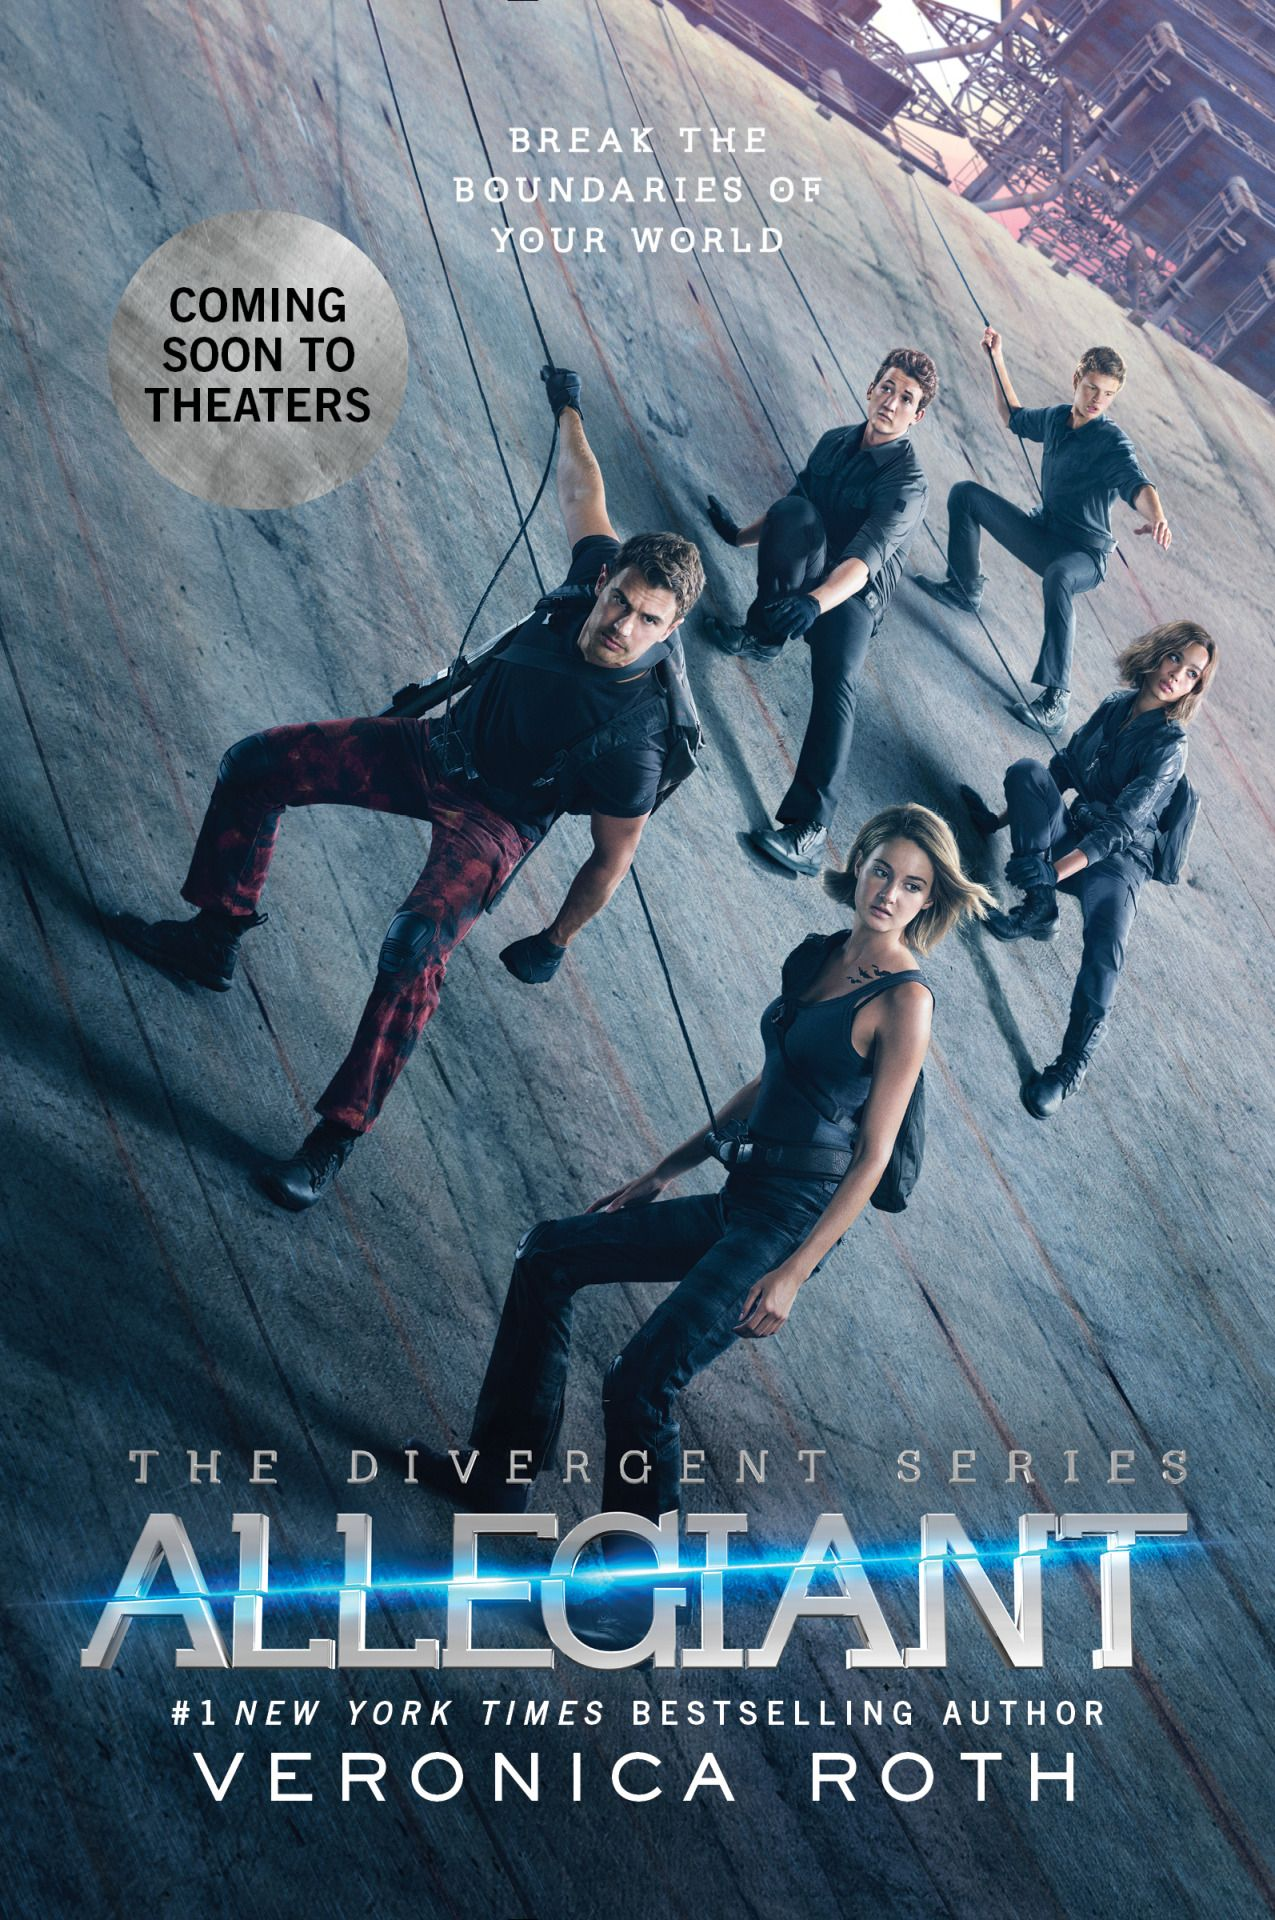 The #Allegiant movie tie-edition will be available on February/16 & it will feature 32 pages of bonus content! Happy birthday to my favorite Theo James!